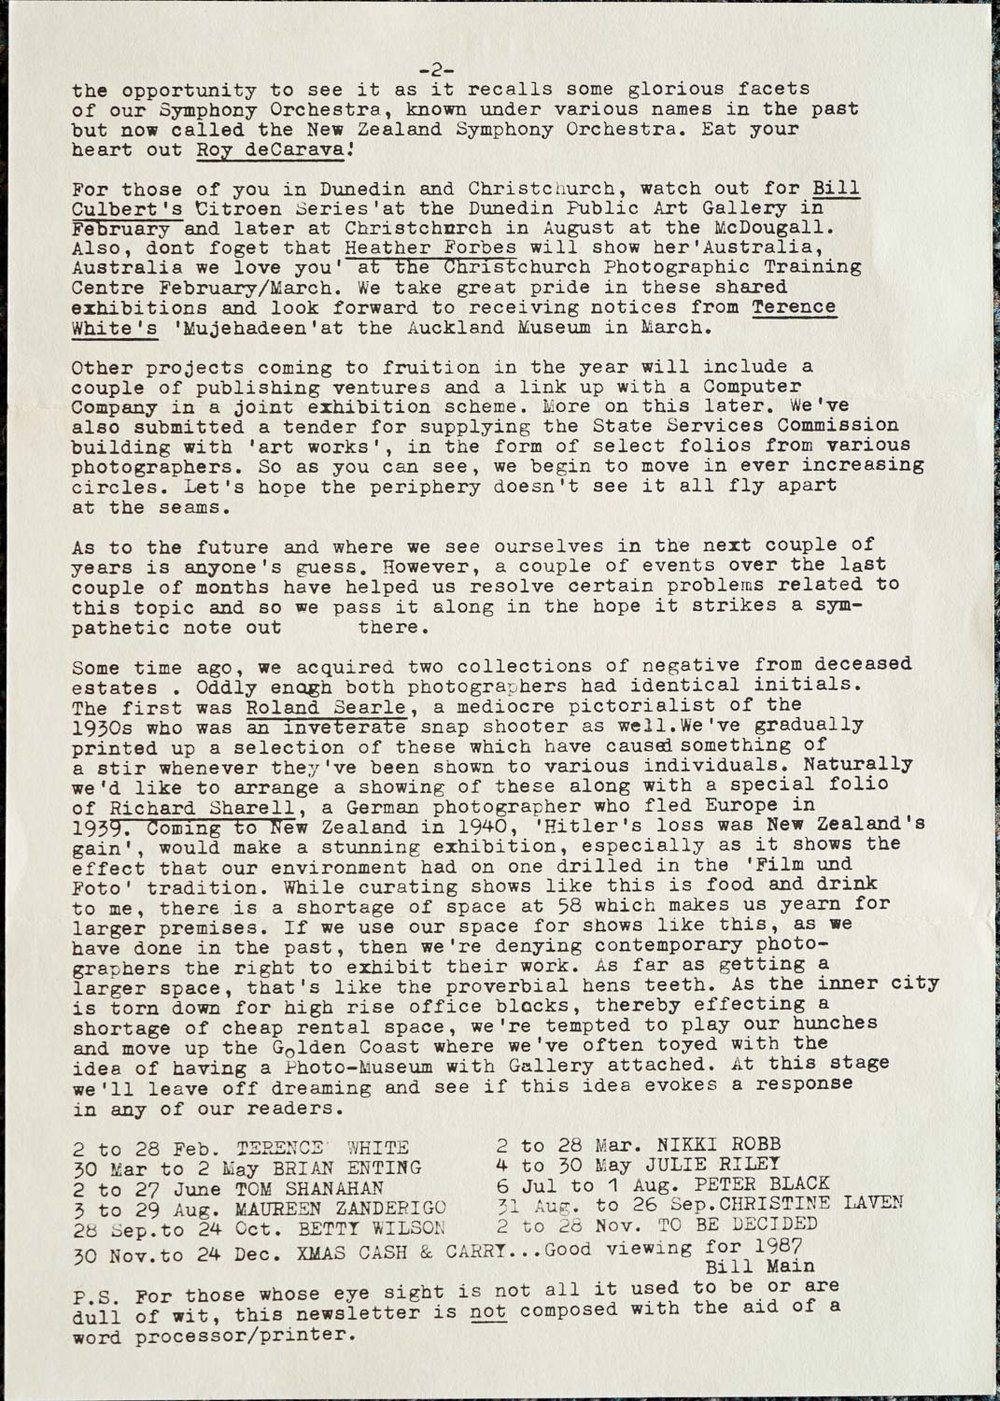 Exposures Gallery Newsletter No.12, February (?) 1987